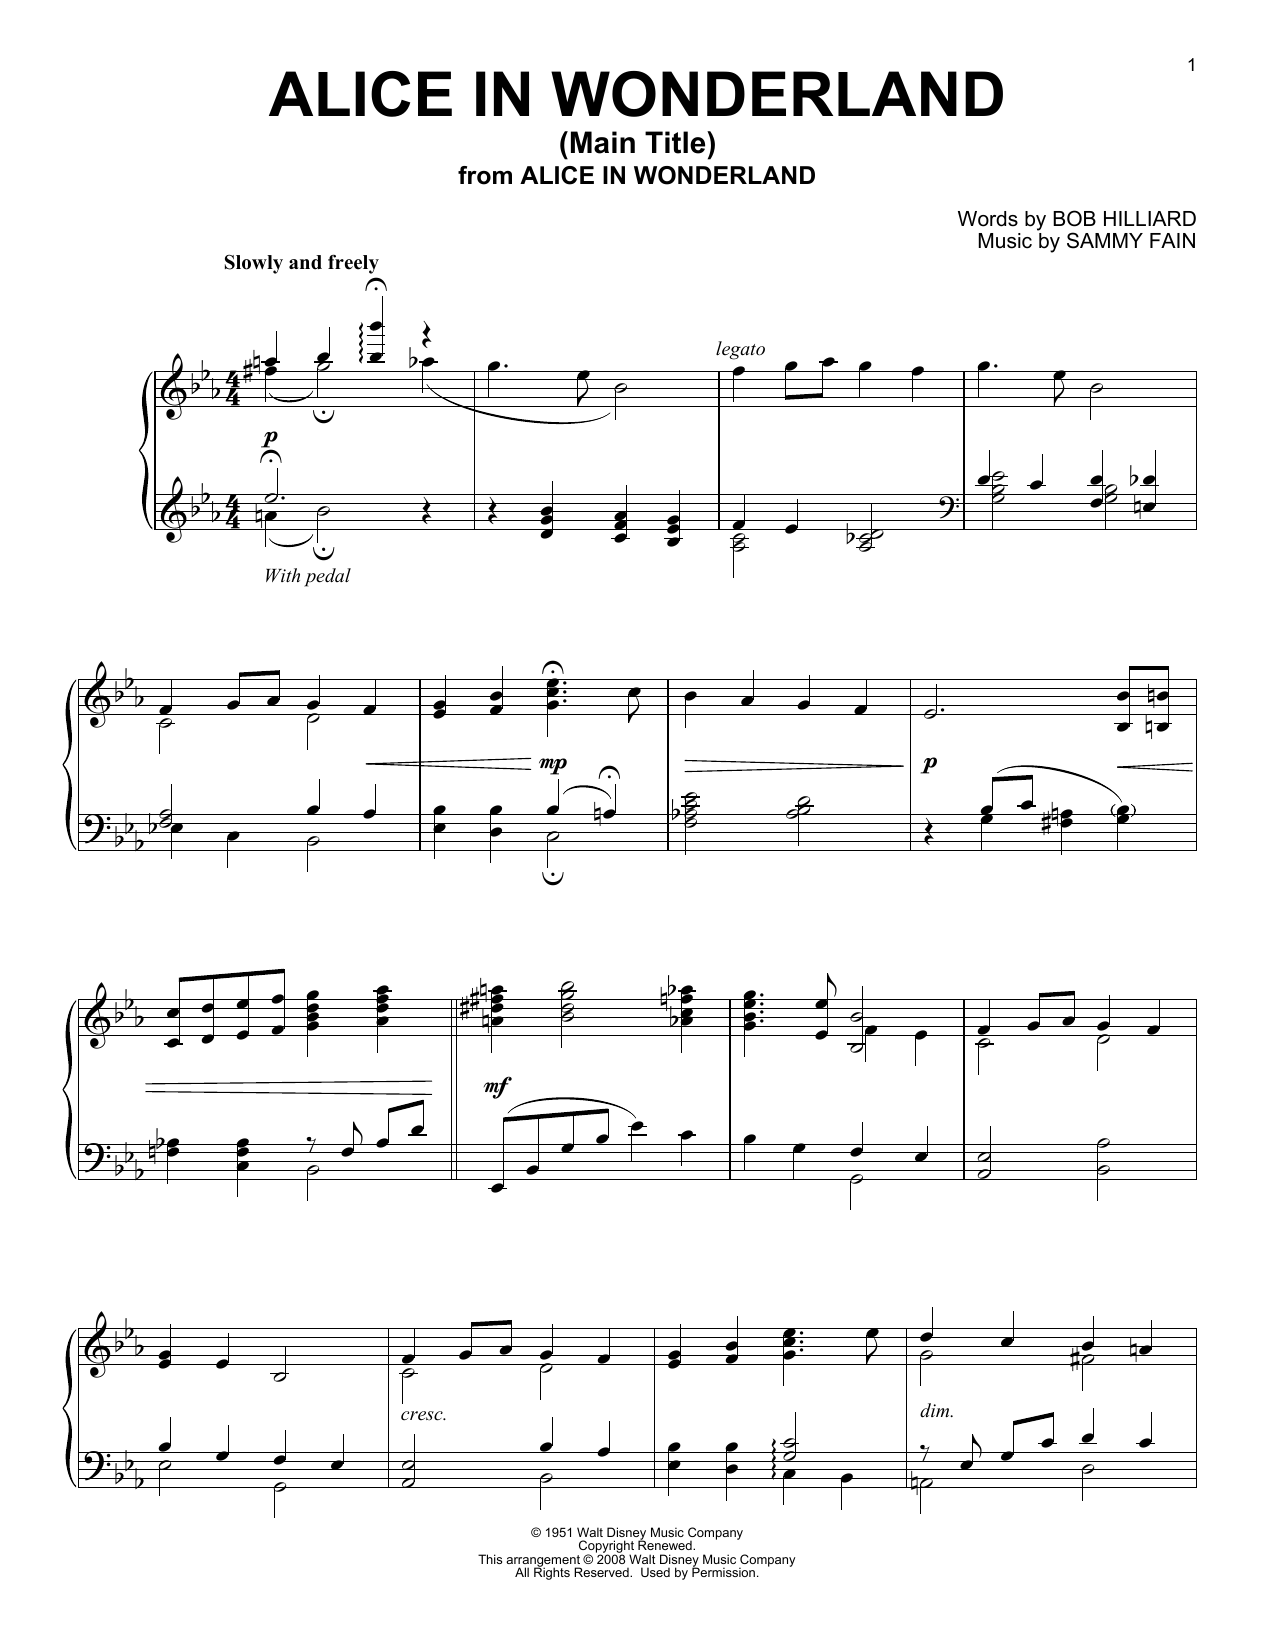 Alice In Wonderland sheet music for piano solo by Sammy Fain